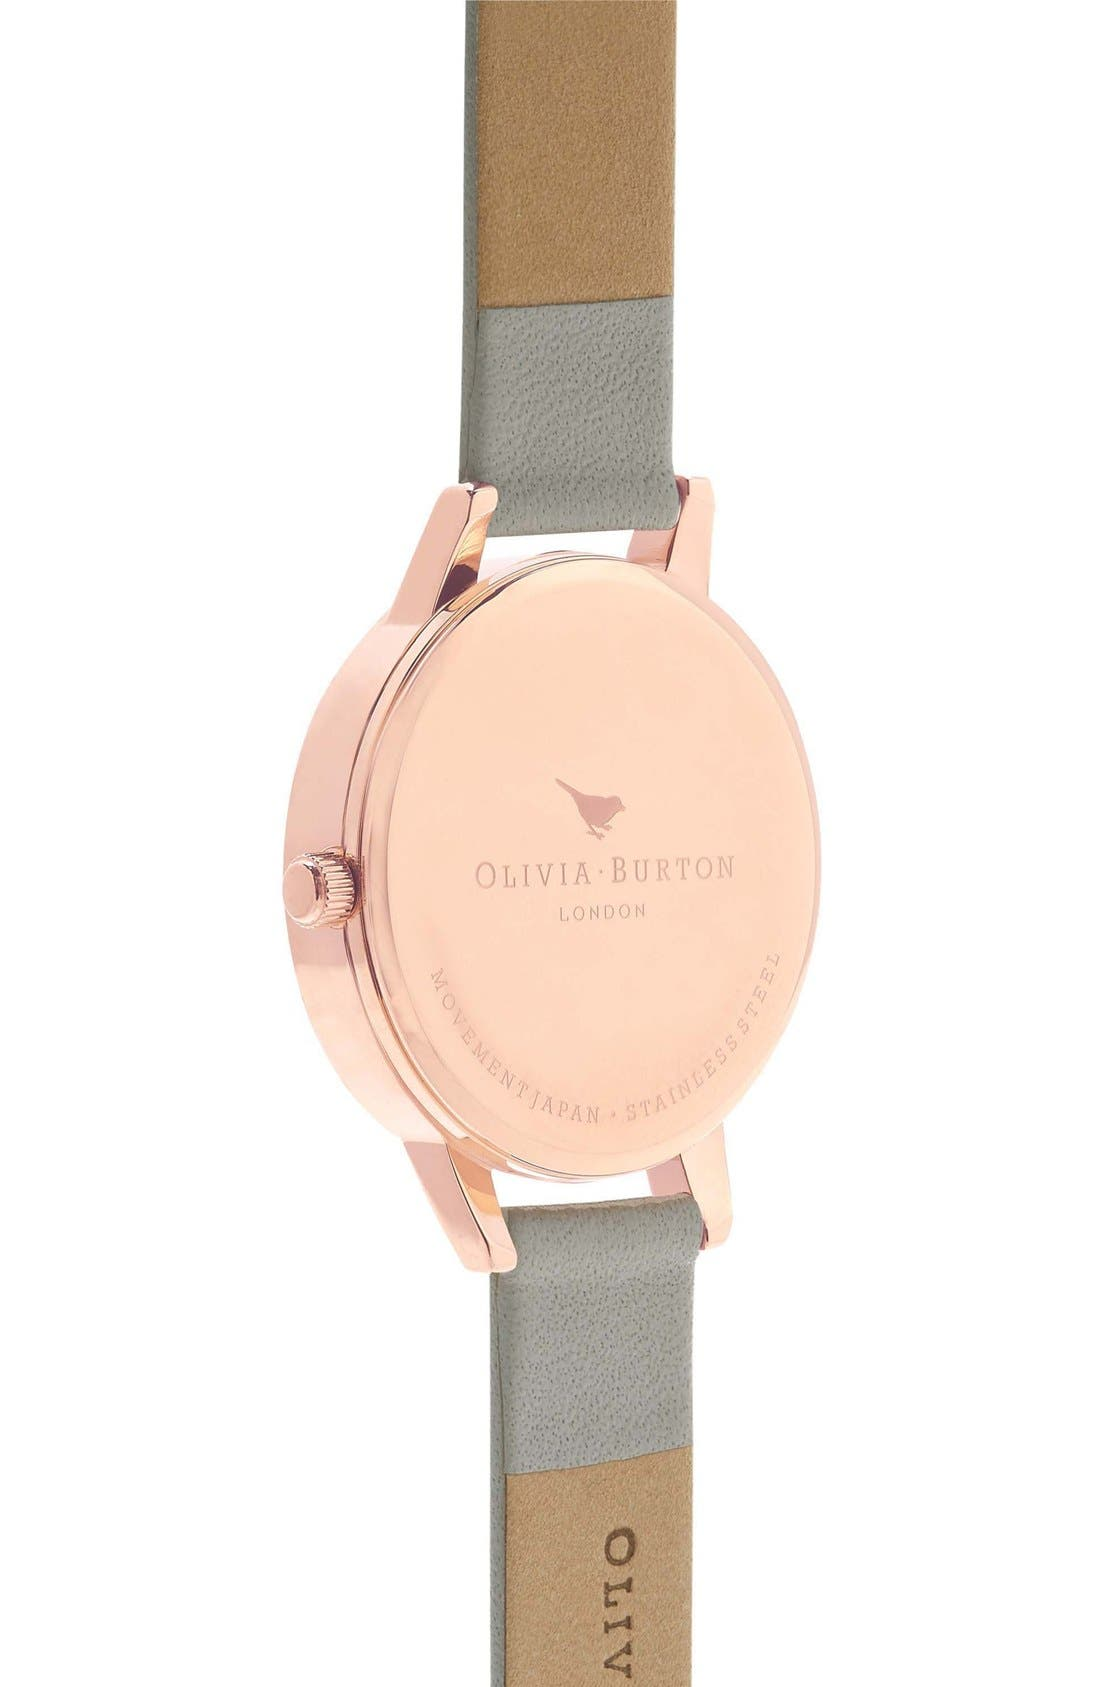 Lace Detail Leather Strap Watch, 30mm,                             Alternate thumbnail 4, color,                             020